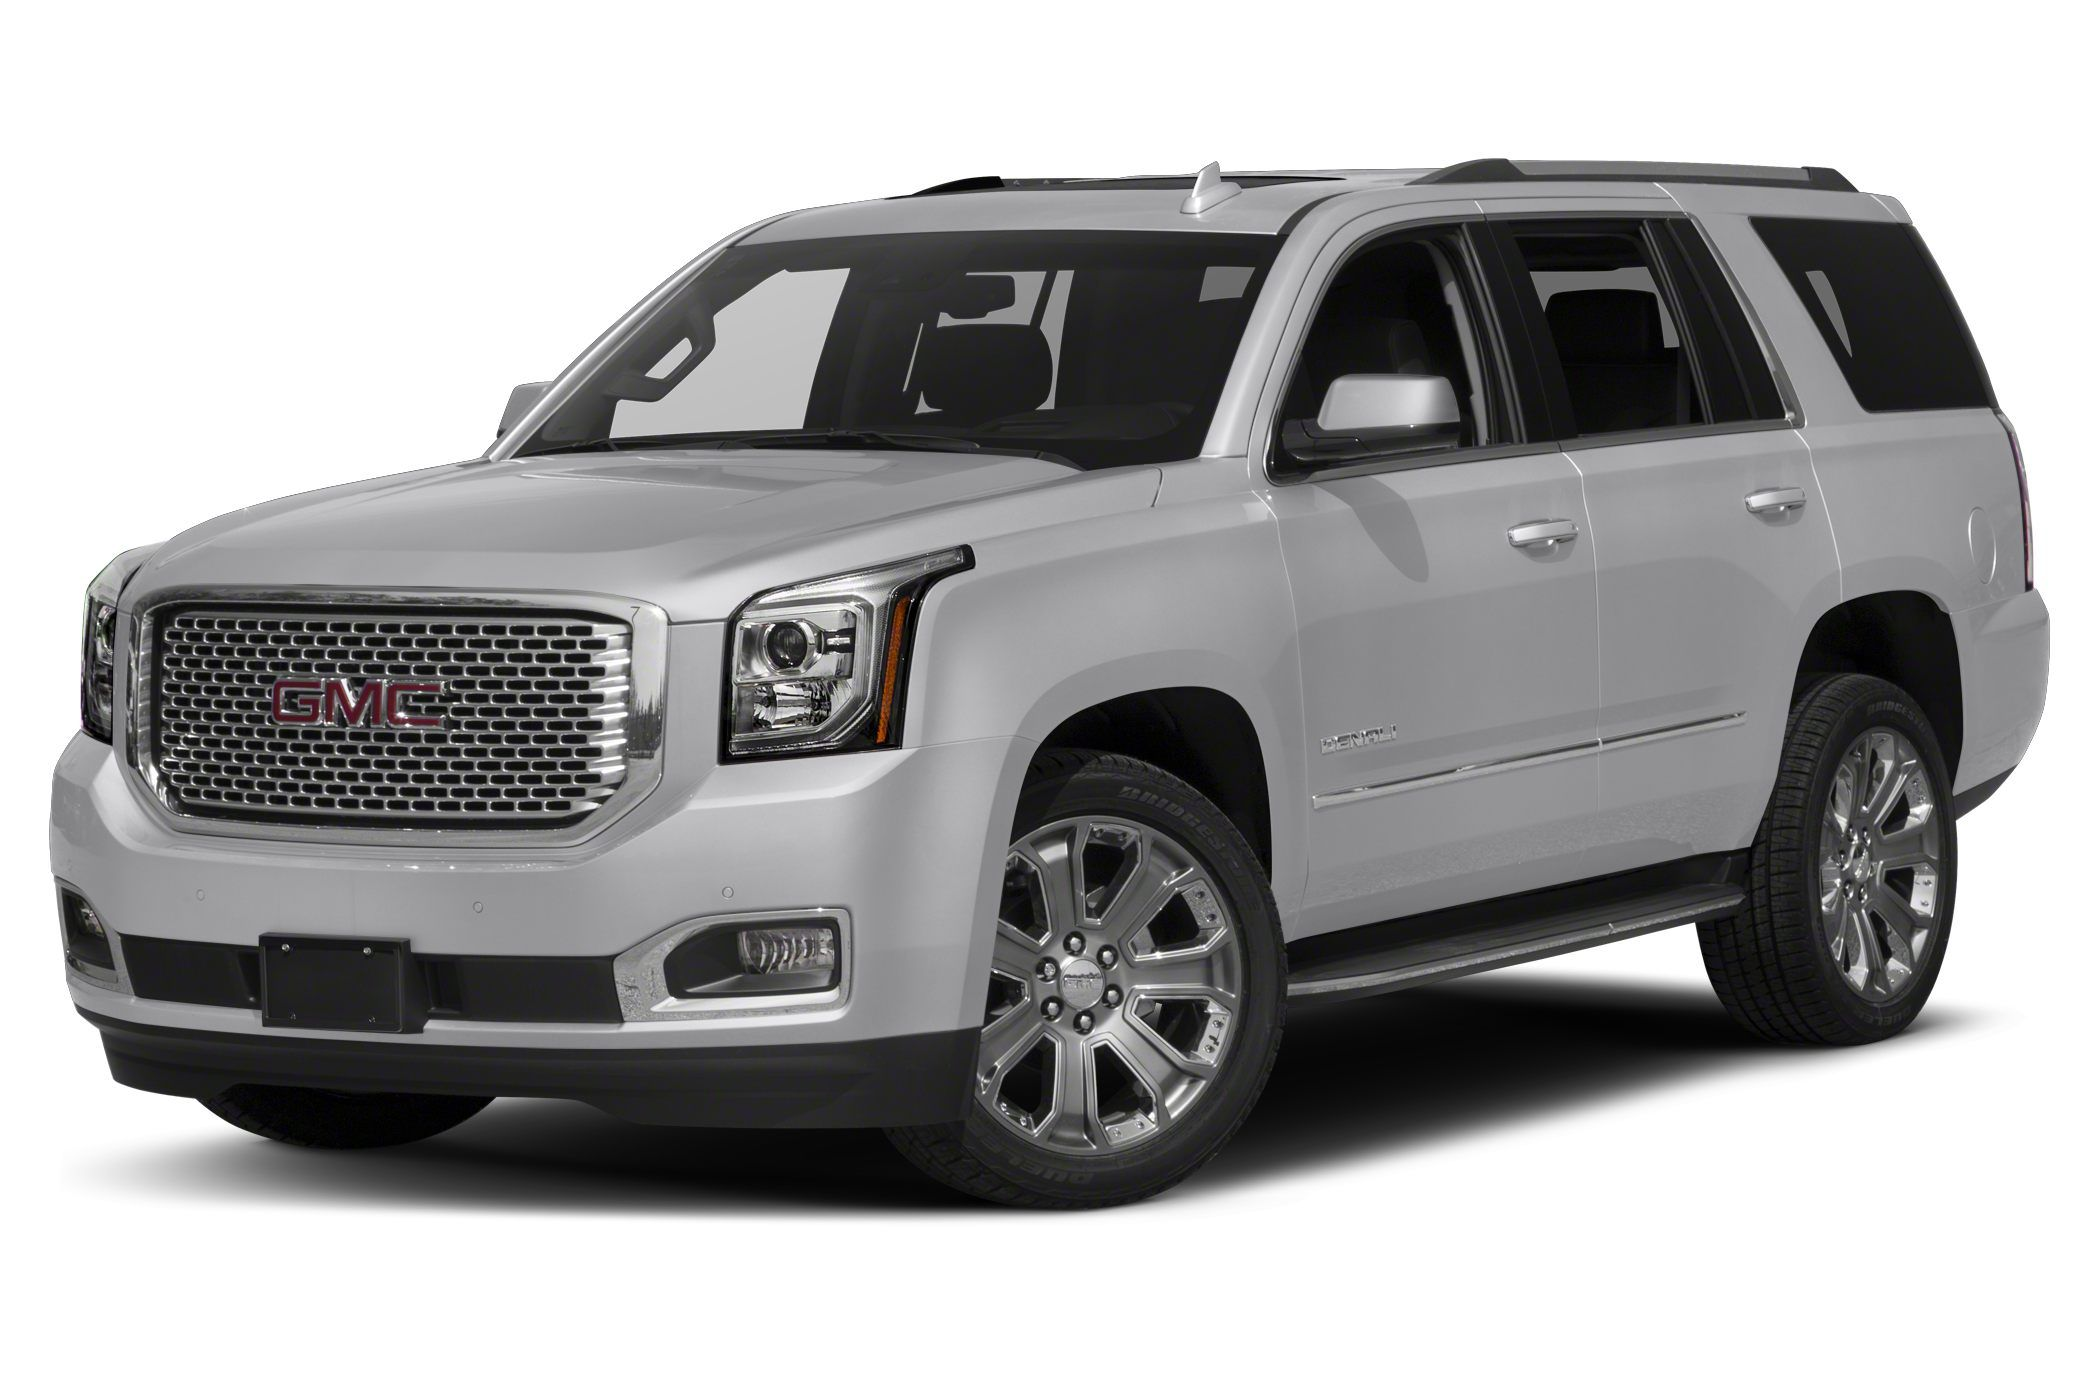 2019 Gmc Yukon Denali Review Specs And Release Date Redesign Price And Review Concept Redesign And Review Release Dat In 2020 Gmc Yukon Denali Gmc Denali Gmc Suv